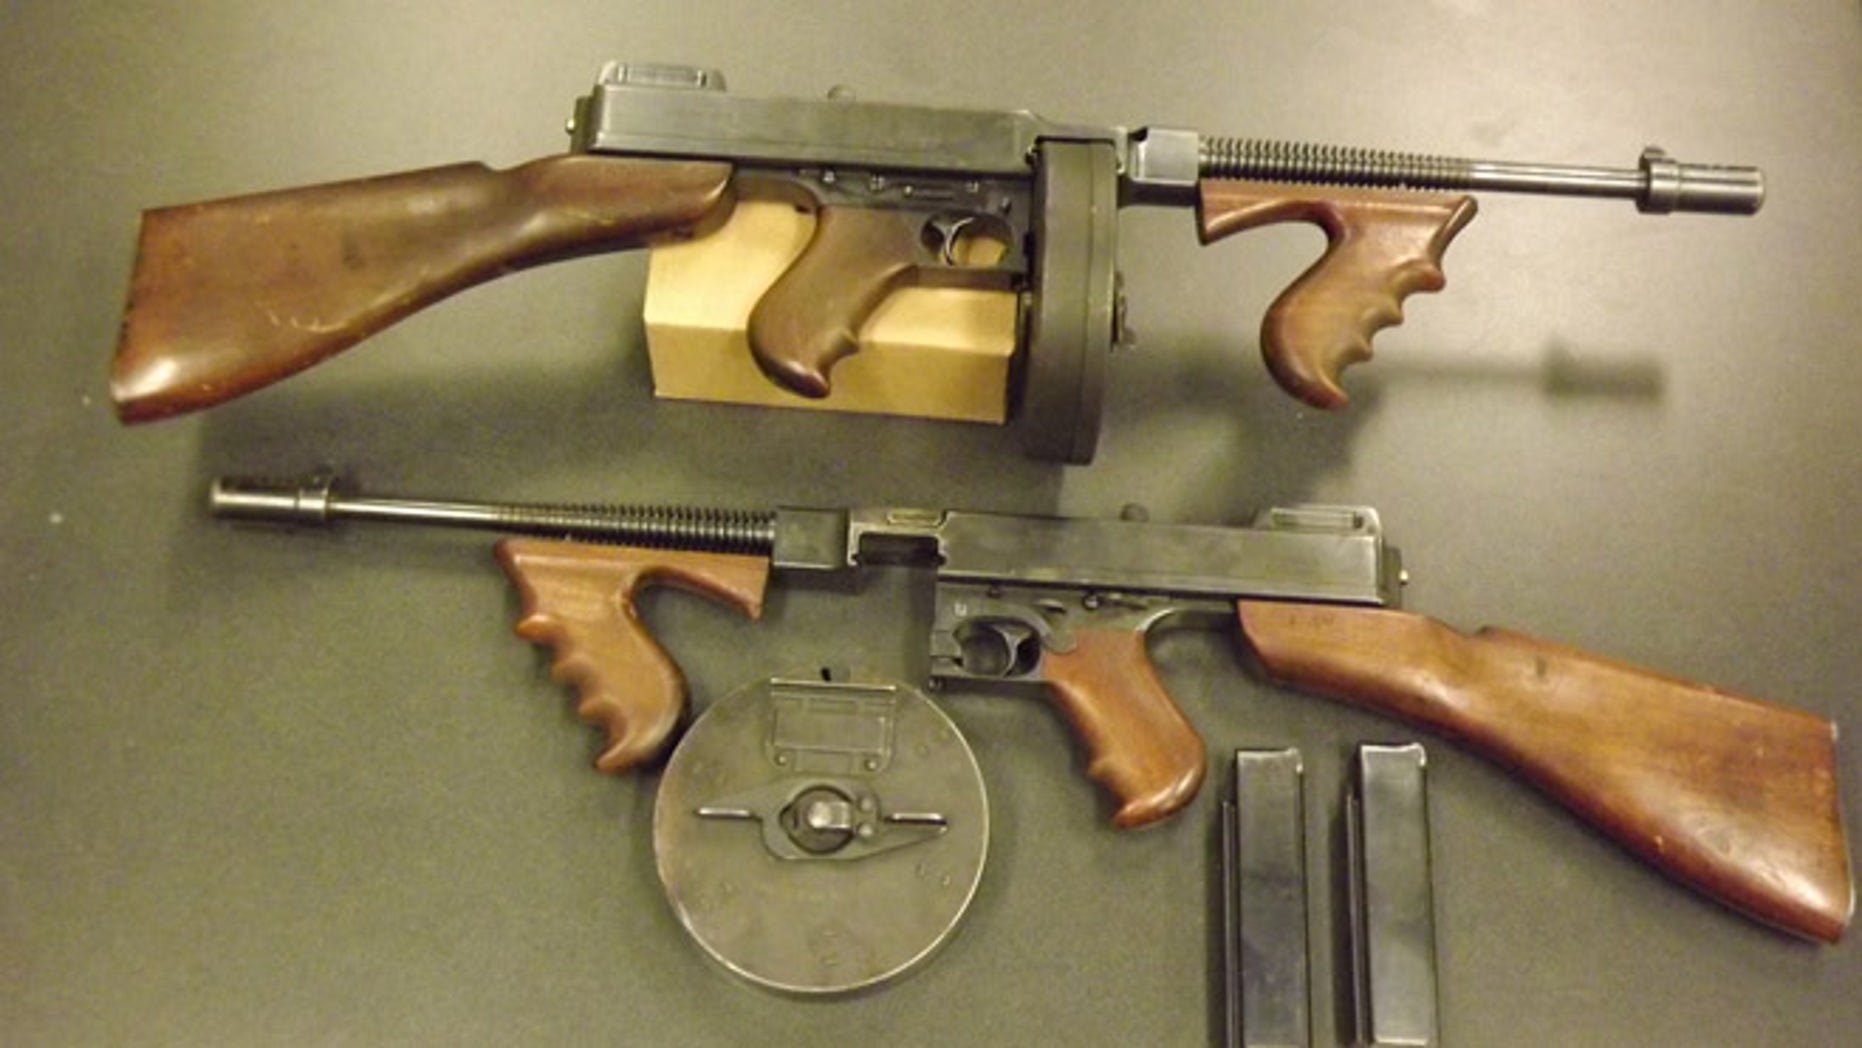 The Forsyth County Sheriff's office in North Carolina will trade this pair of Thompson submachine guns for 88 Bushmaster rifles. the guns, which were made in 1928, are coveted by collectors and are worth $60,000.